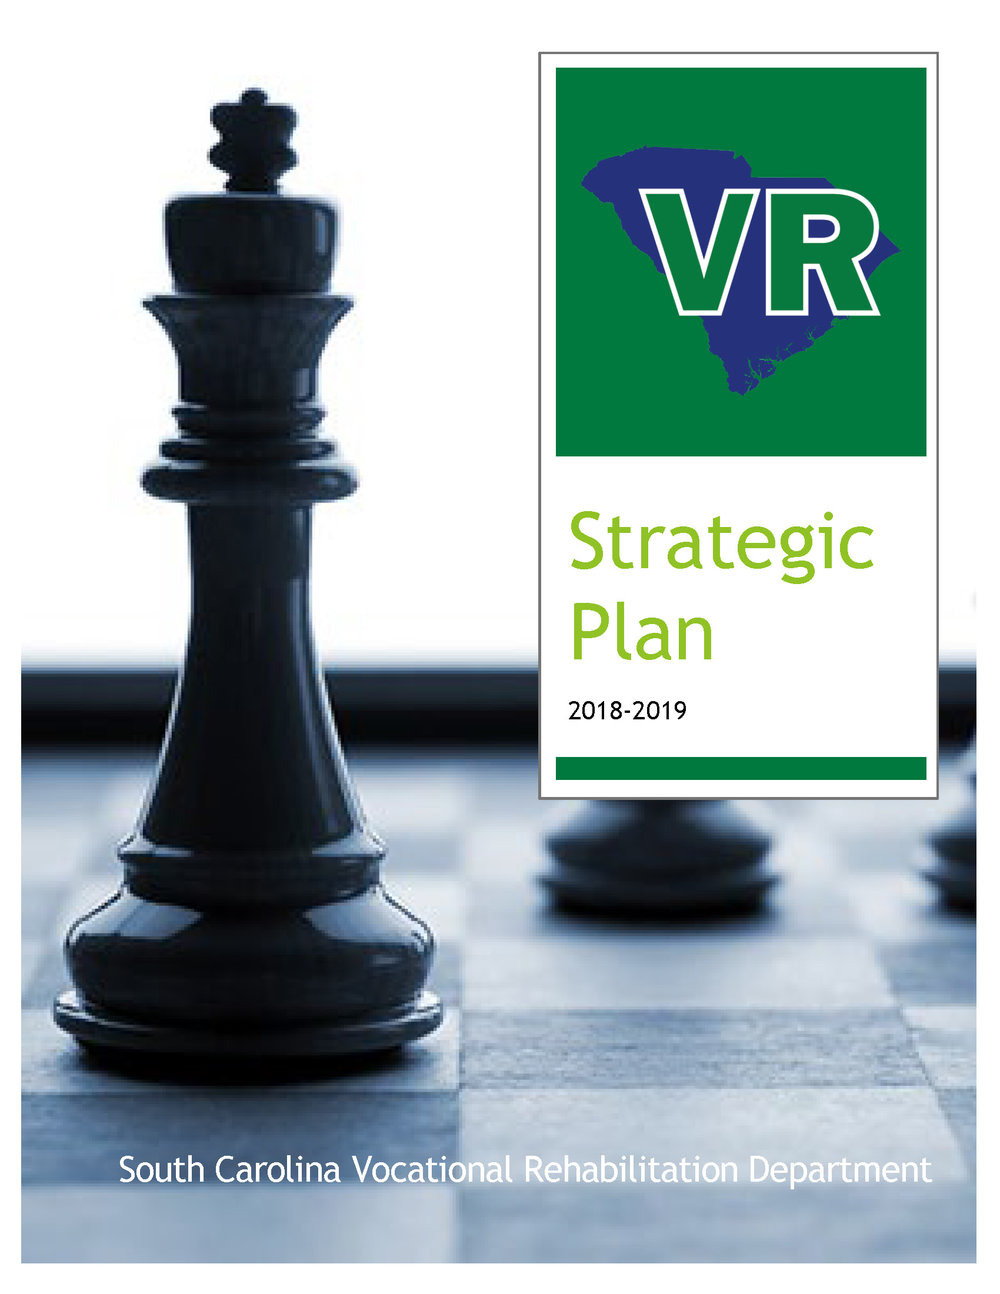 document_2019-strategic-plan_2019-01-25_thumbnail.jpg